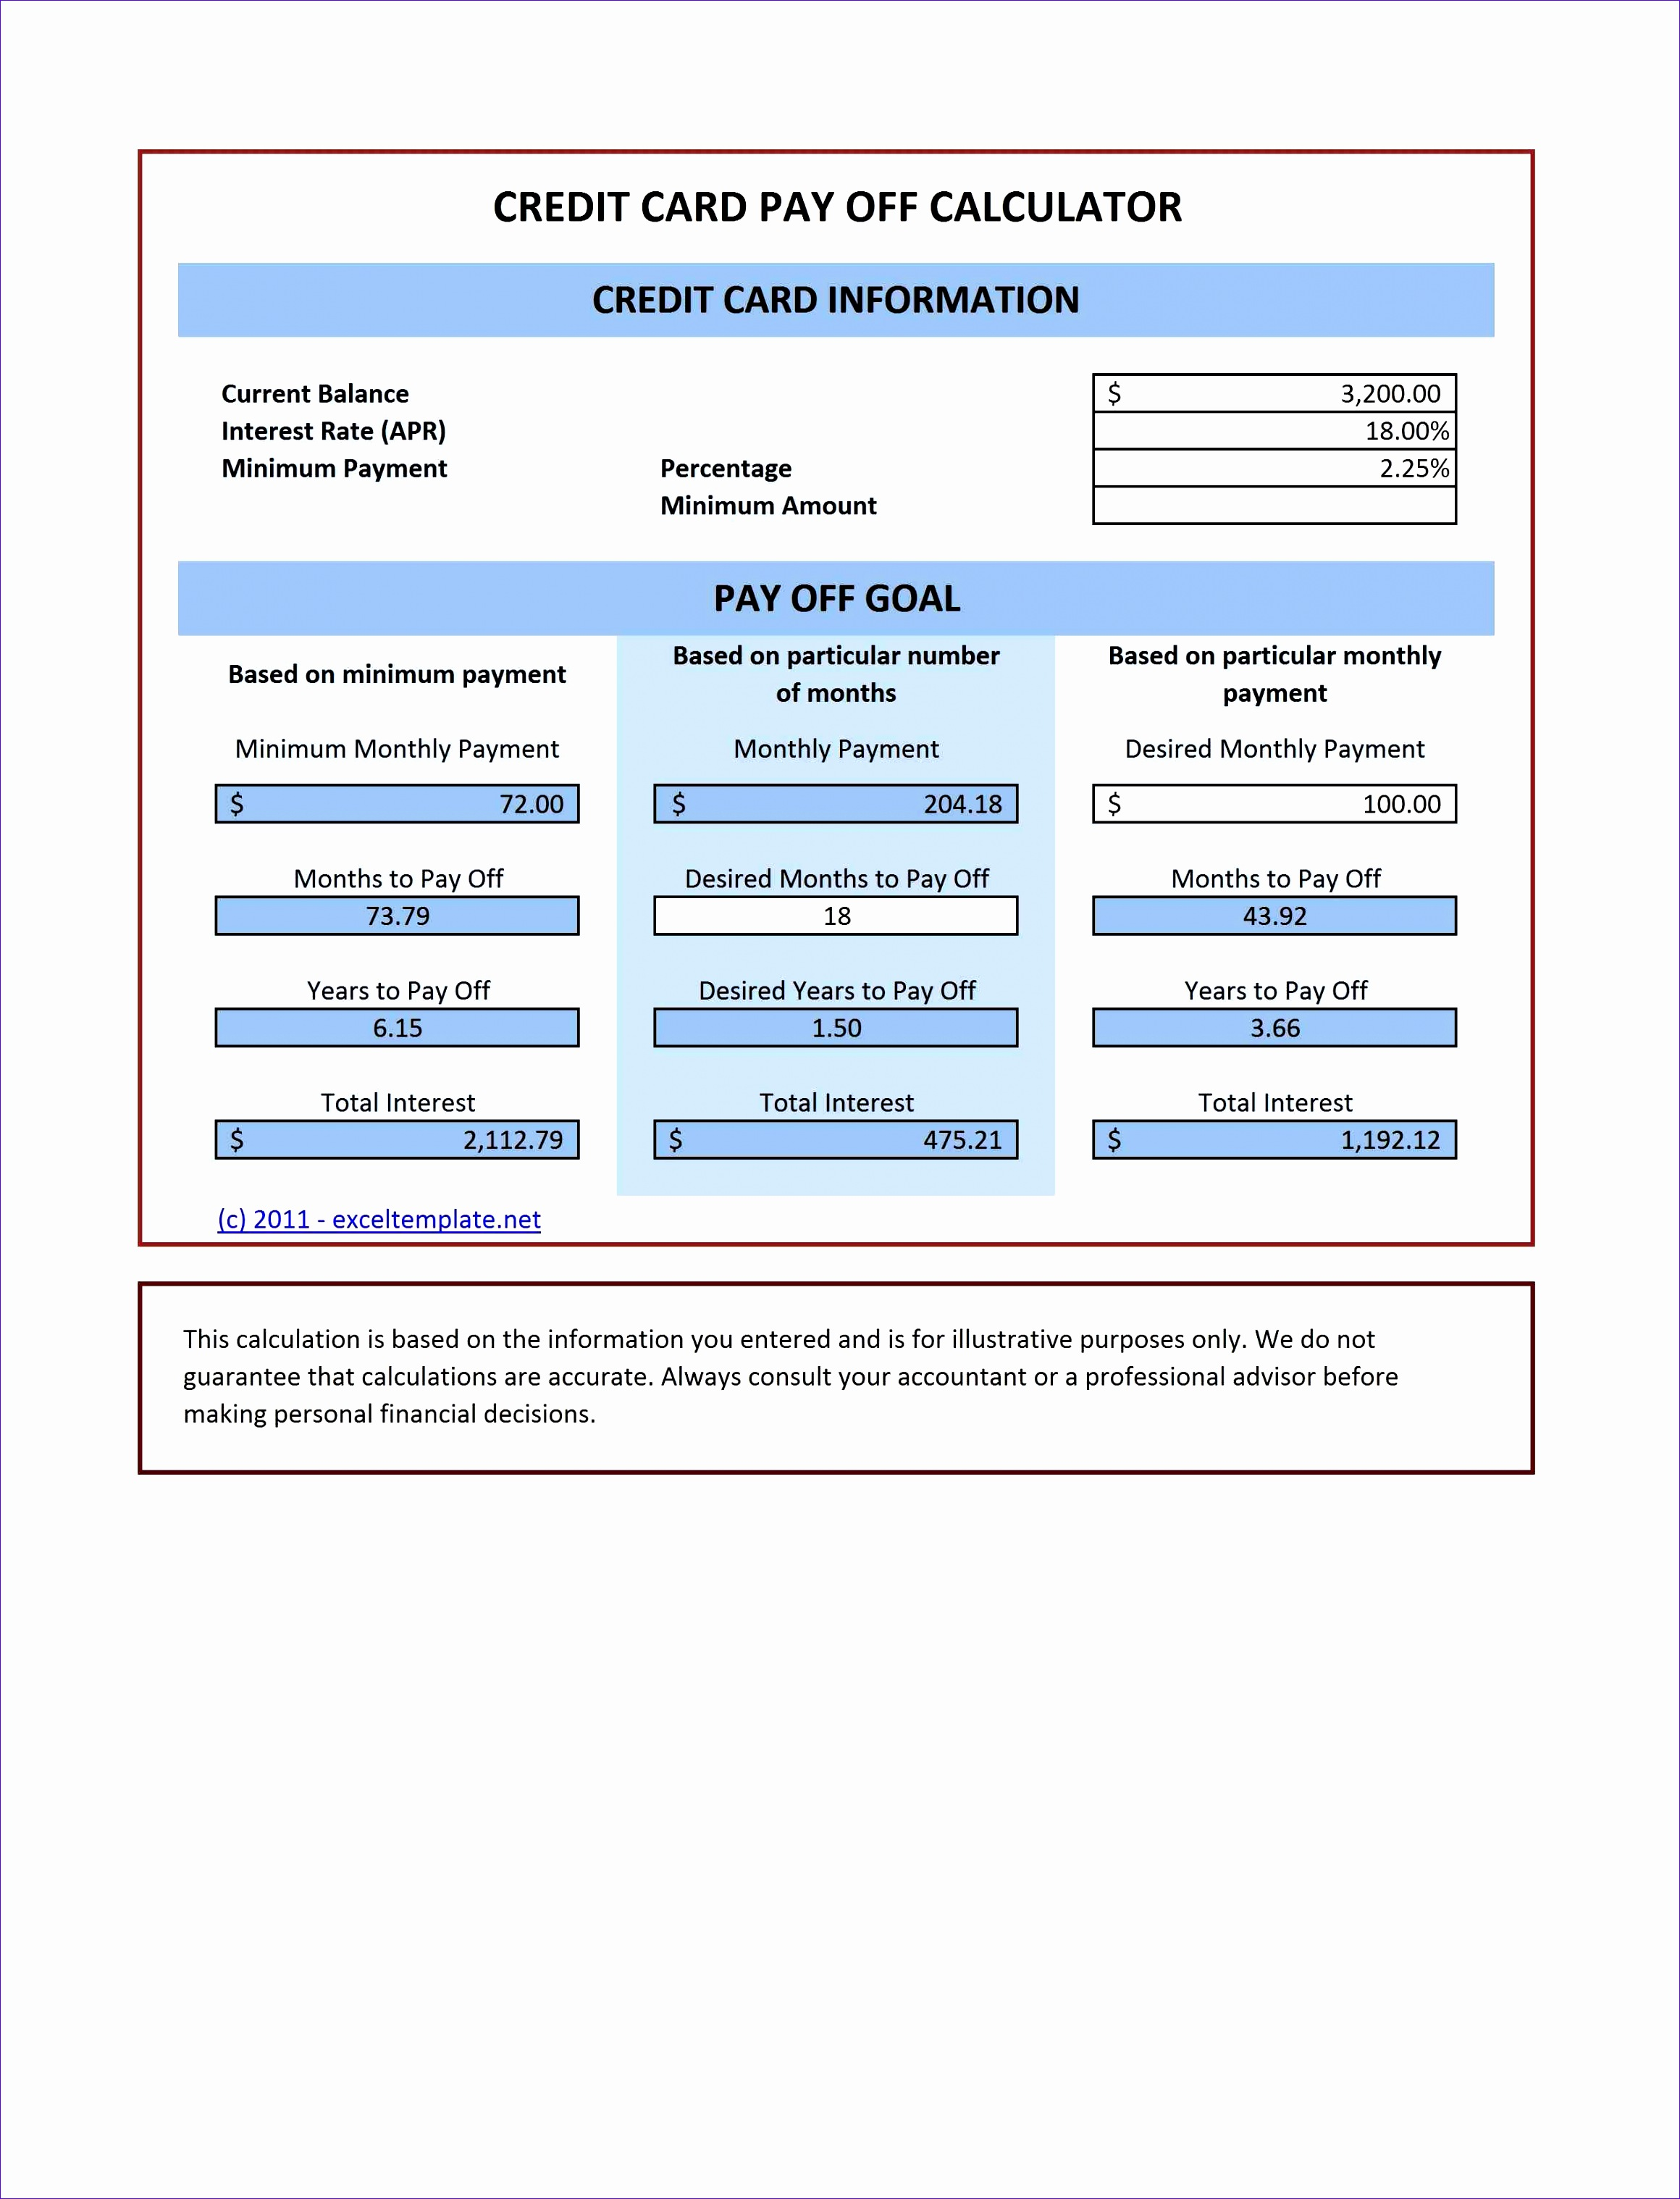 25 Credit Card Pay f Calculator V1 11